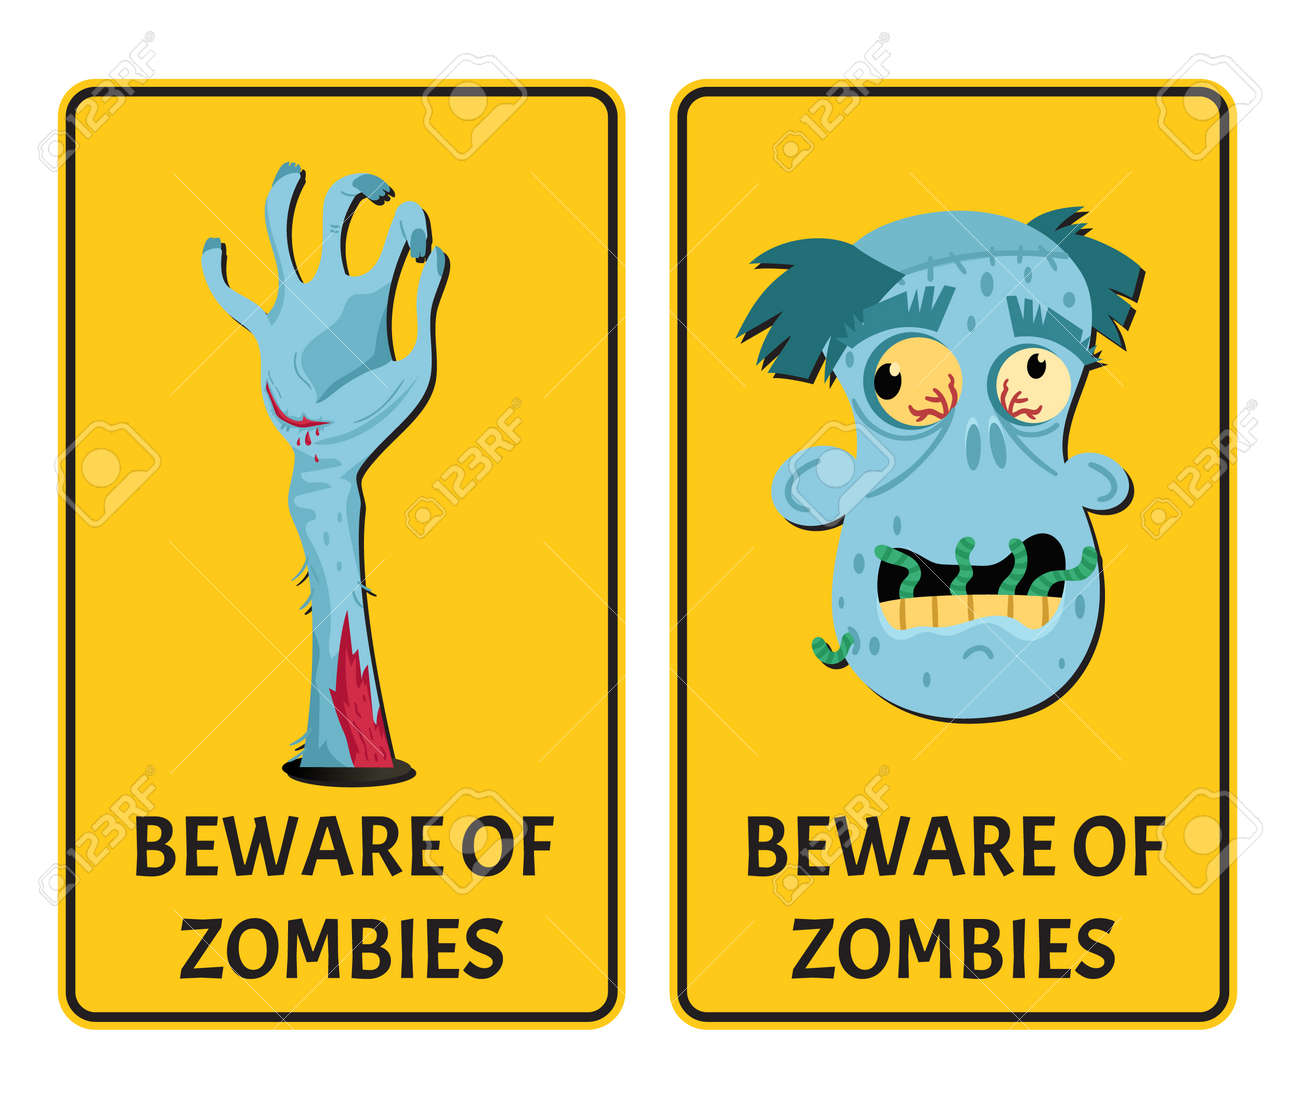 beware of zombies labels with monster body parts. halloween party